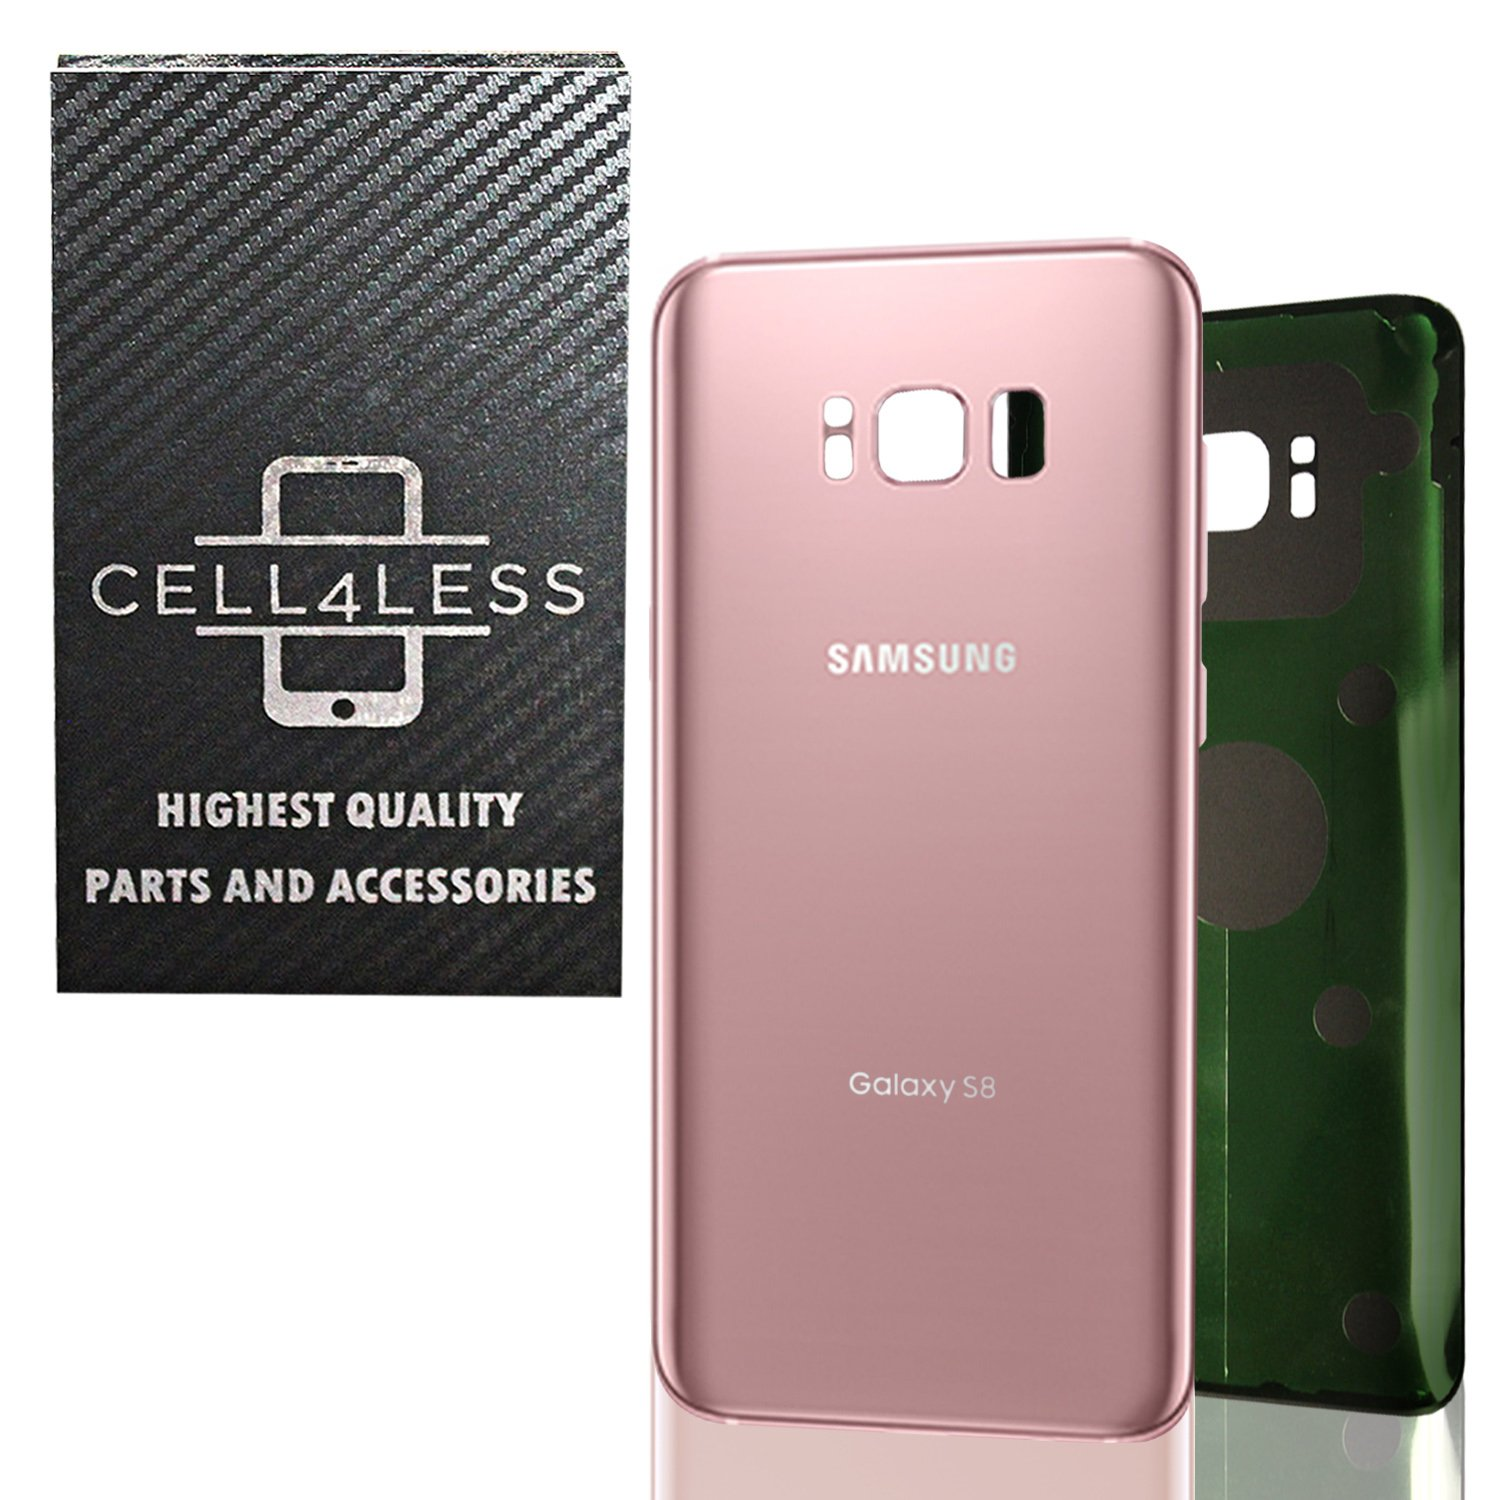 CELL4LESS Replacement Back Glass Cover Back Battery Door w//Pre-Installed Adhesive Samsung Galaxy S8 OEM All Models G950 All Carriers- 2 Logo OEM Replacement Orchid Grey